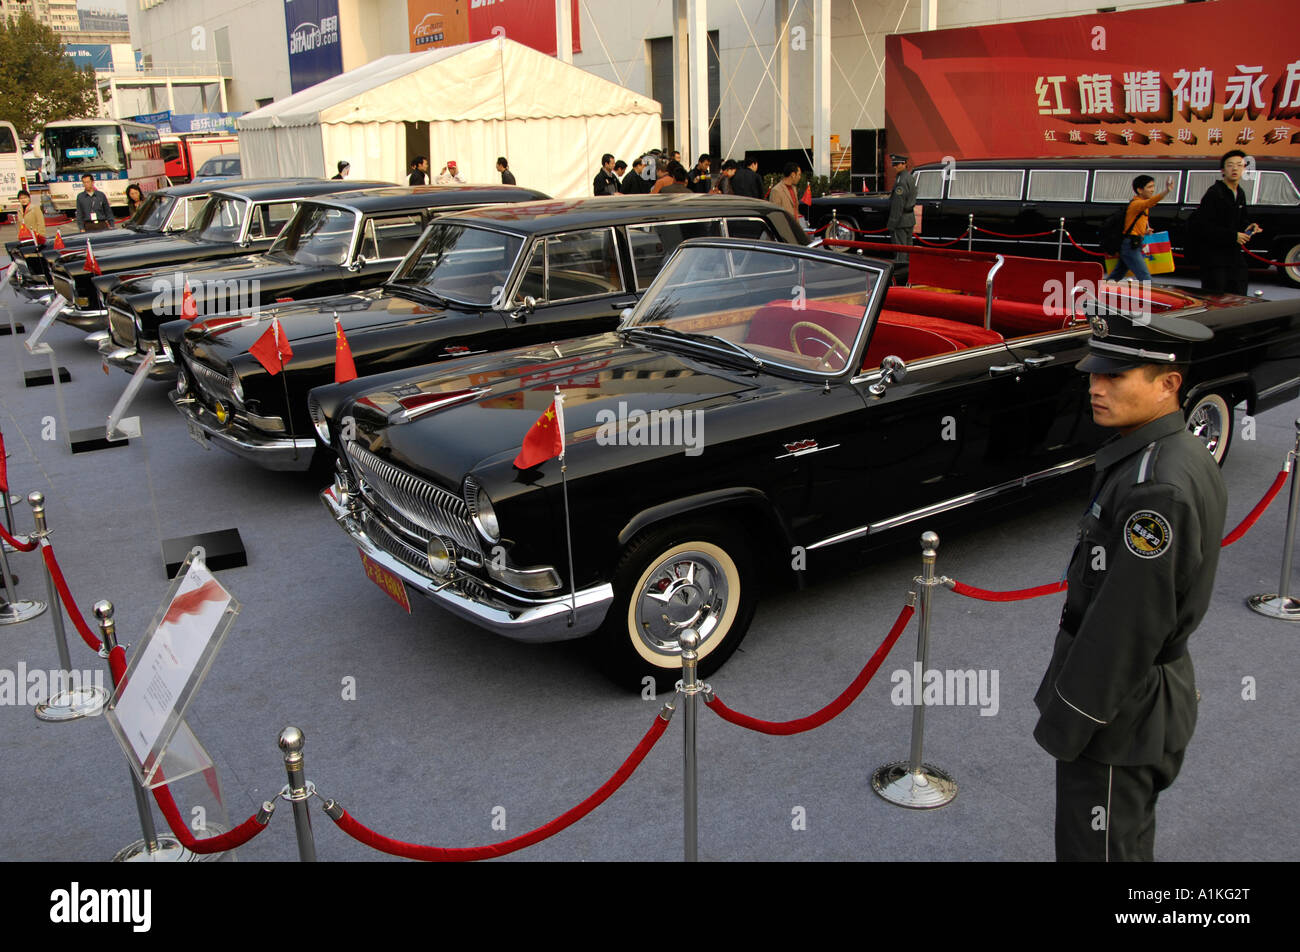 Faw Hongqi Red Flag Old Sedans At The International